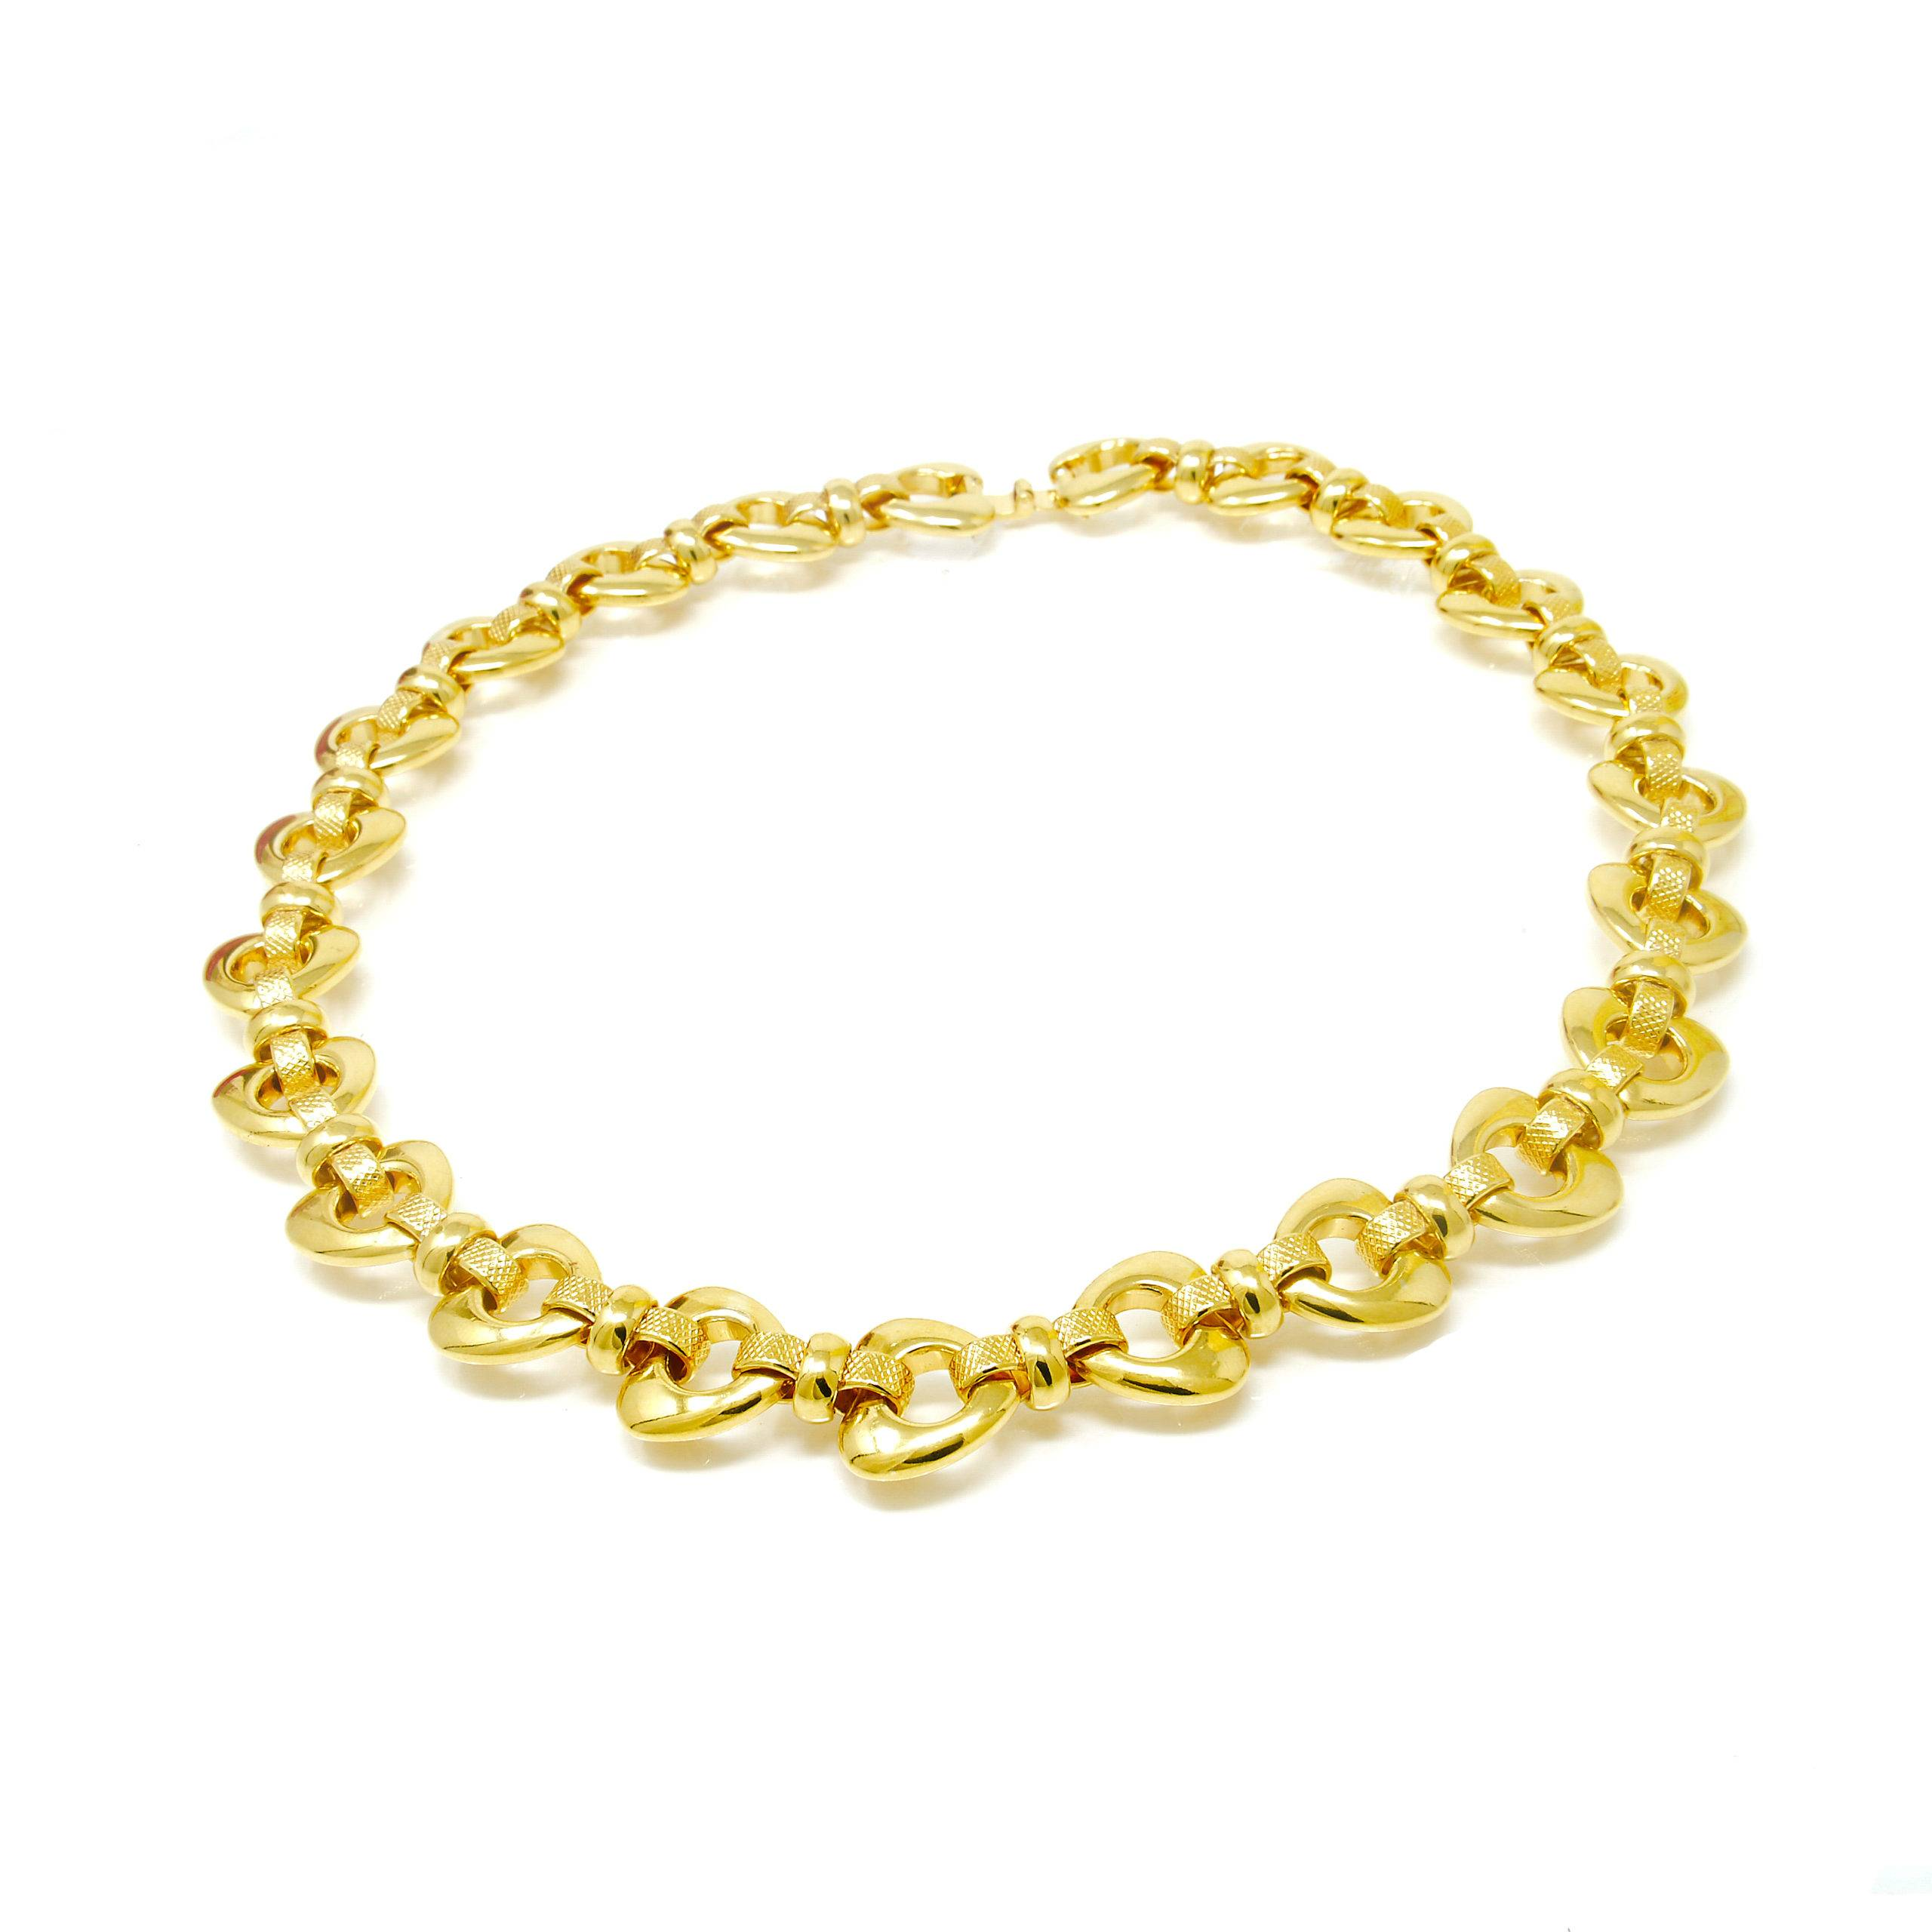 COLLIER MAILLE FORME COEUR 45CM-2